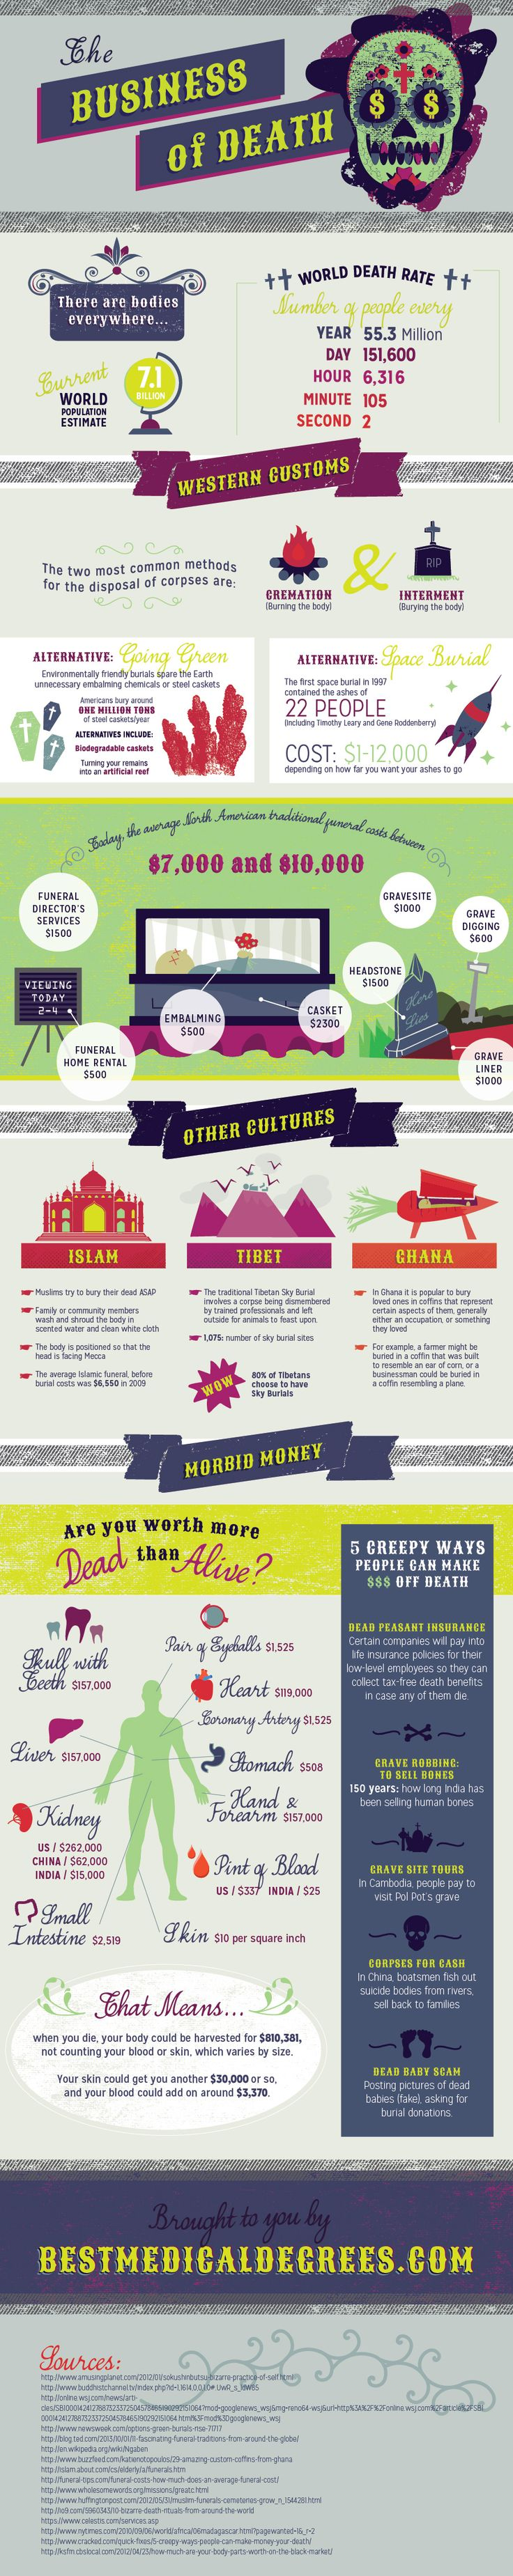 Infographic: The Business of Death